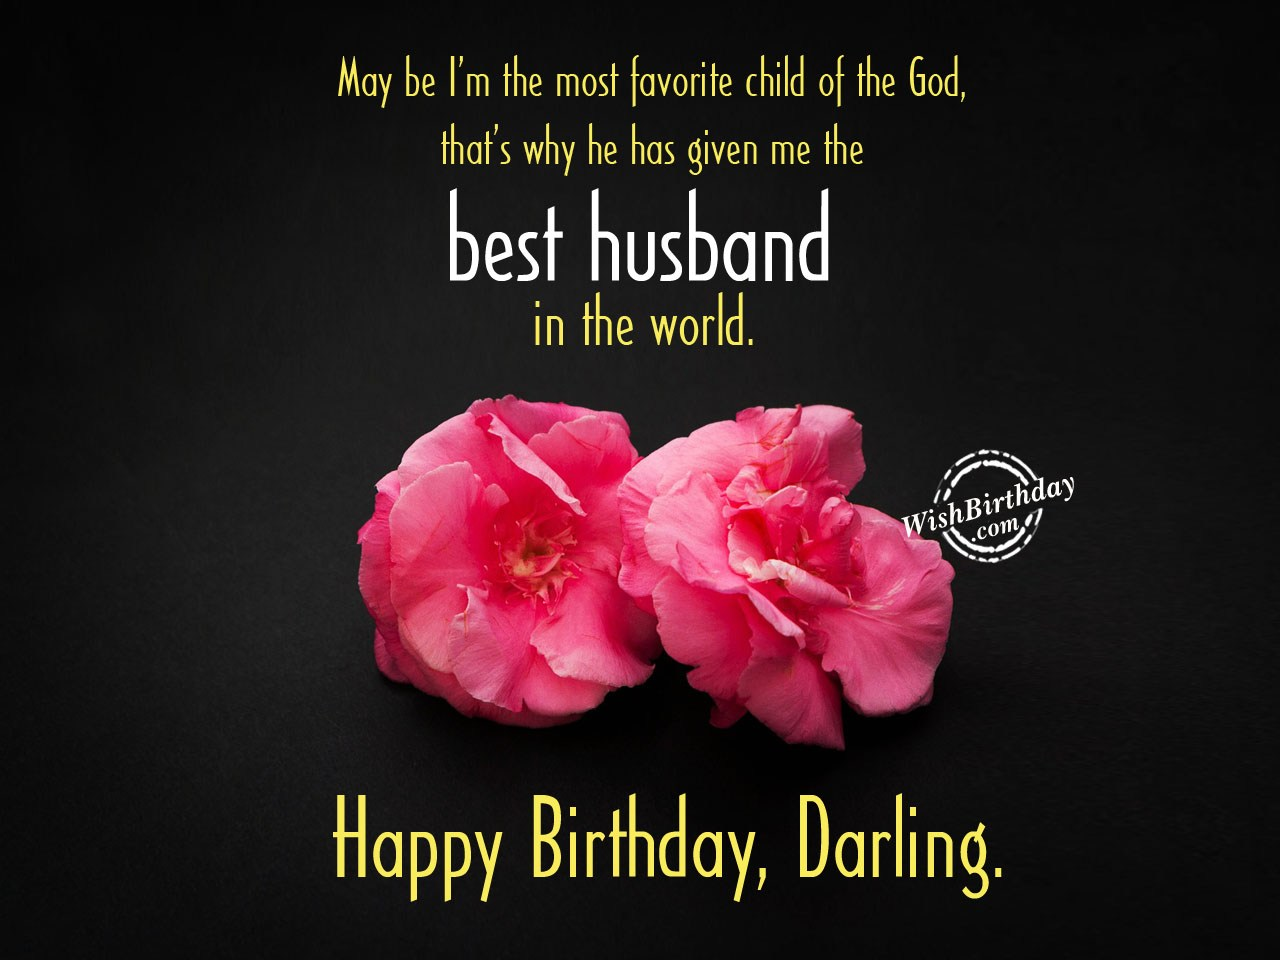 birthday wish for hubby in hindi ; May-be-i-am-the-most-favorite-child-of-the-God